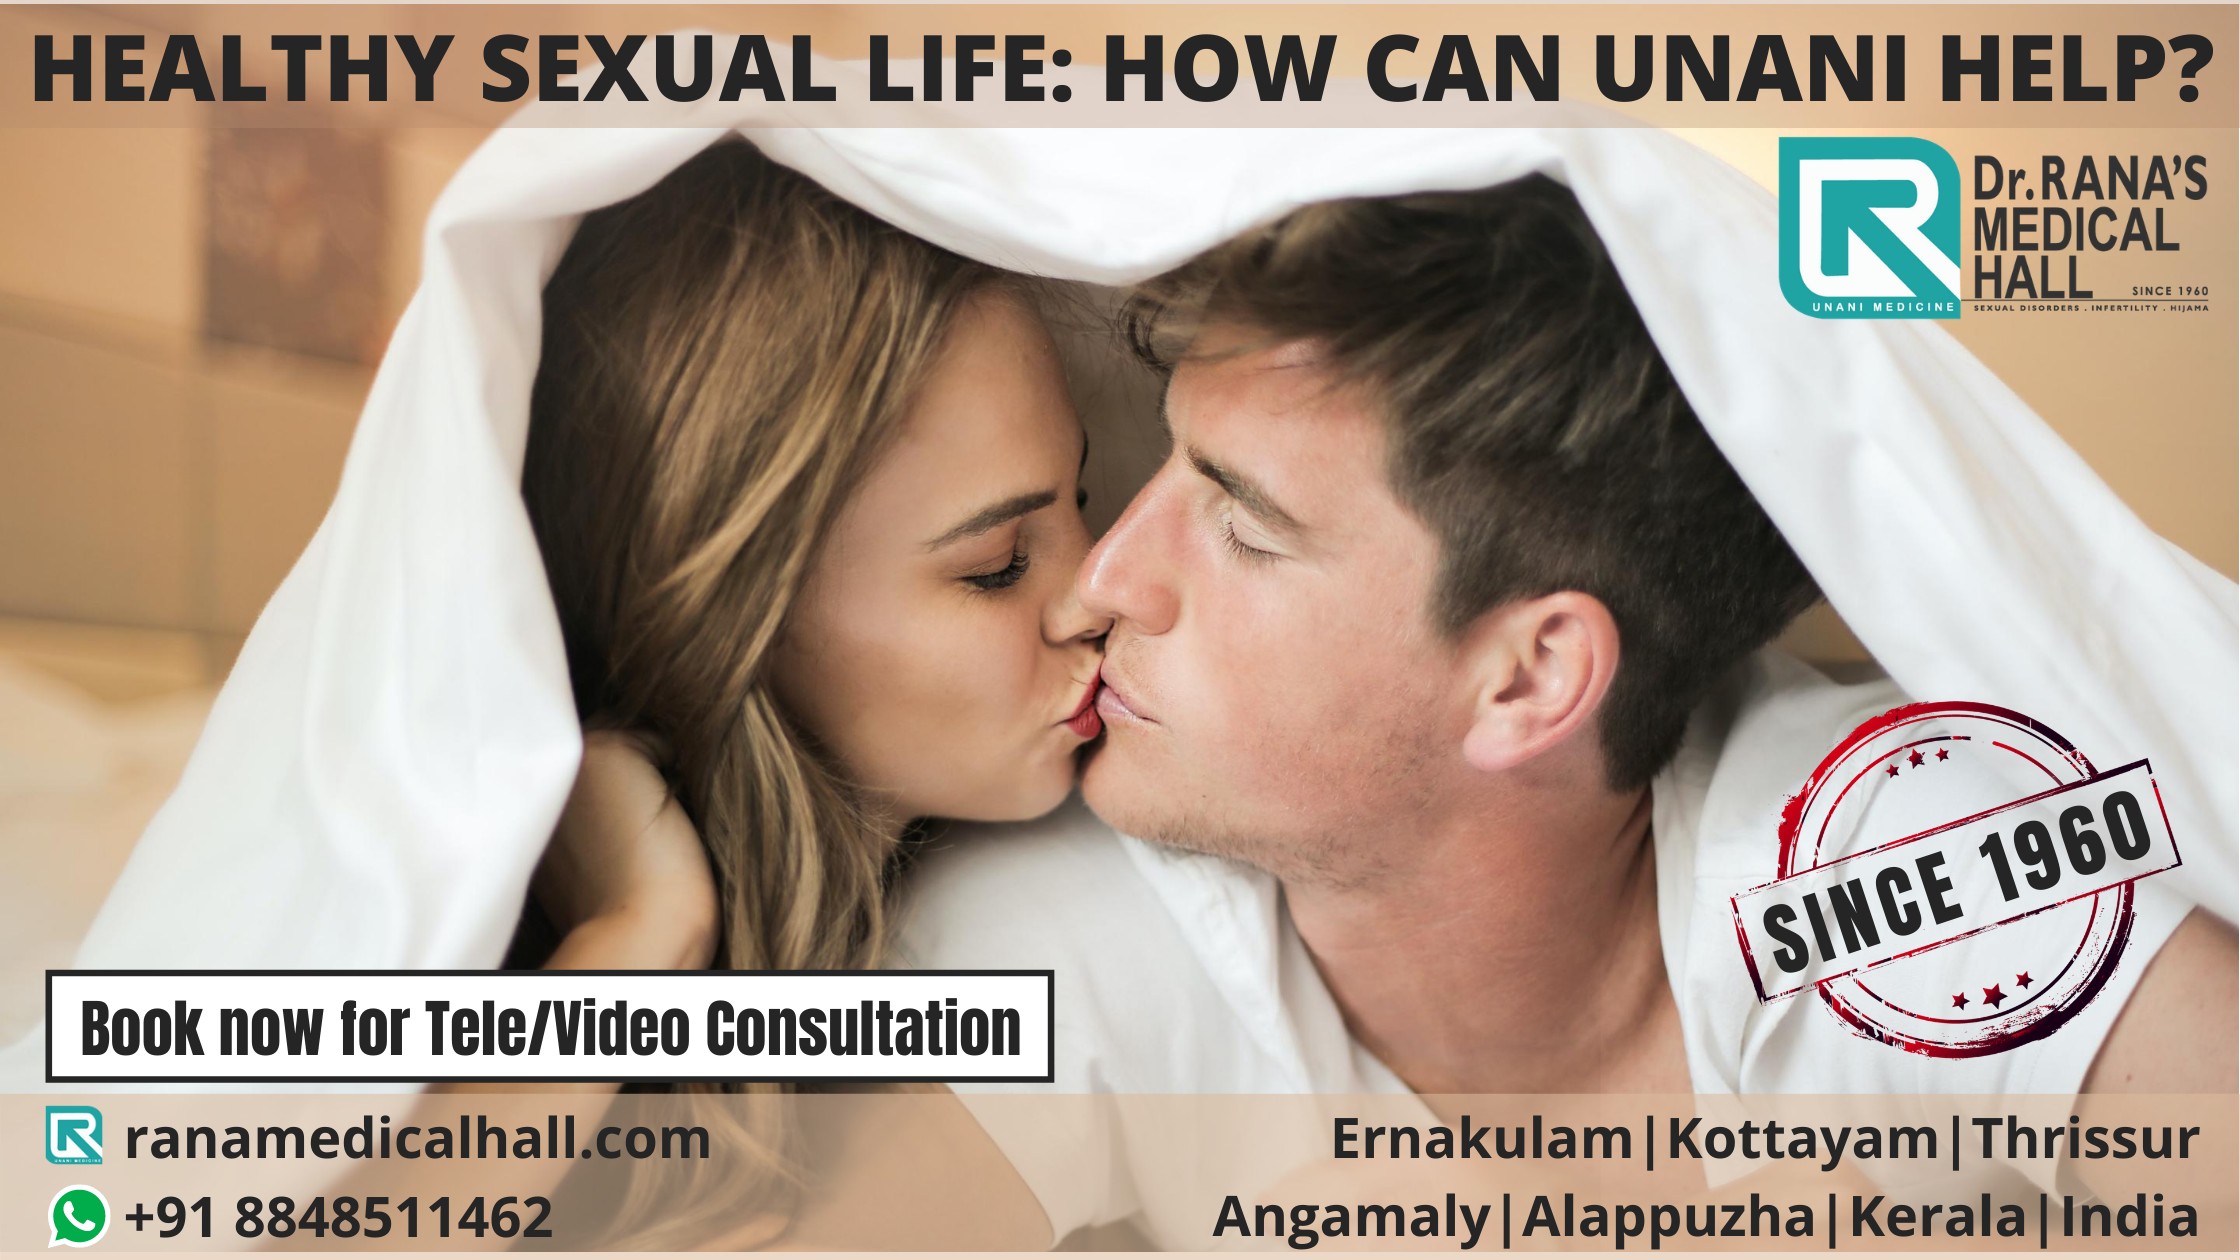 Unani For Healthy Sexual Life